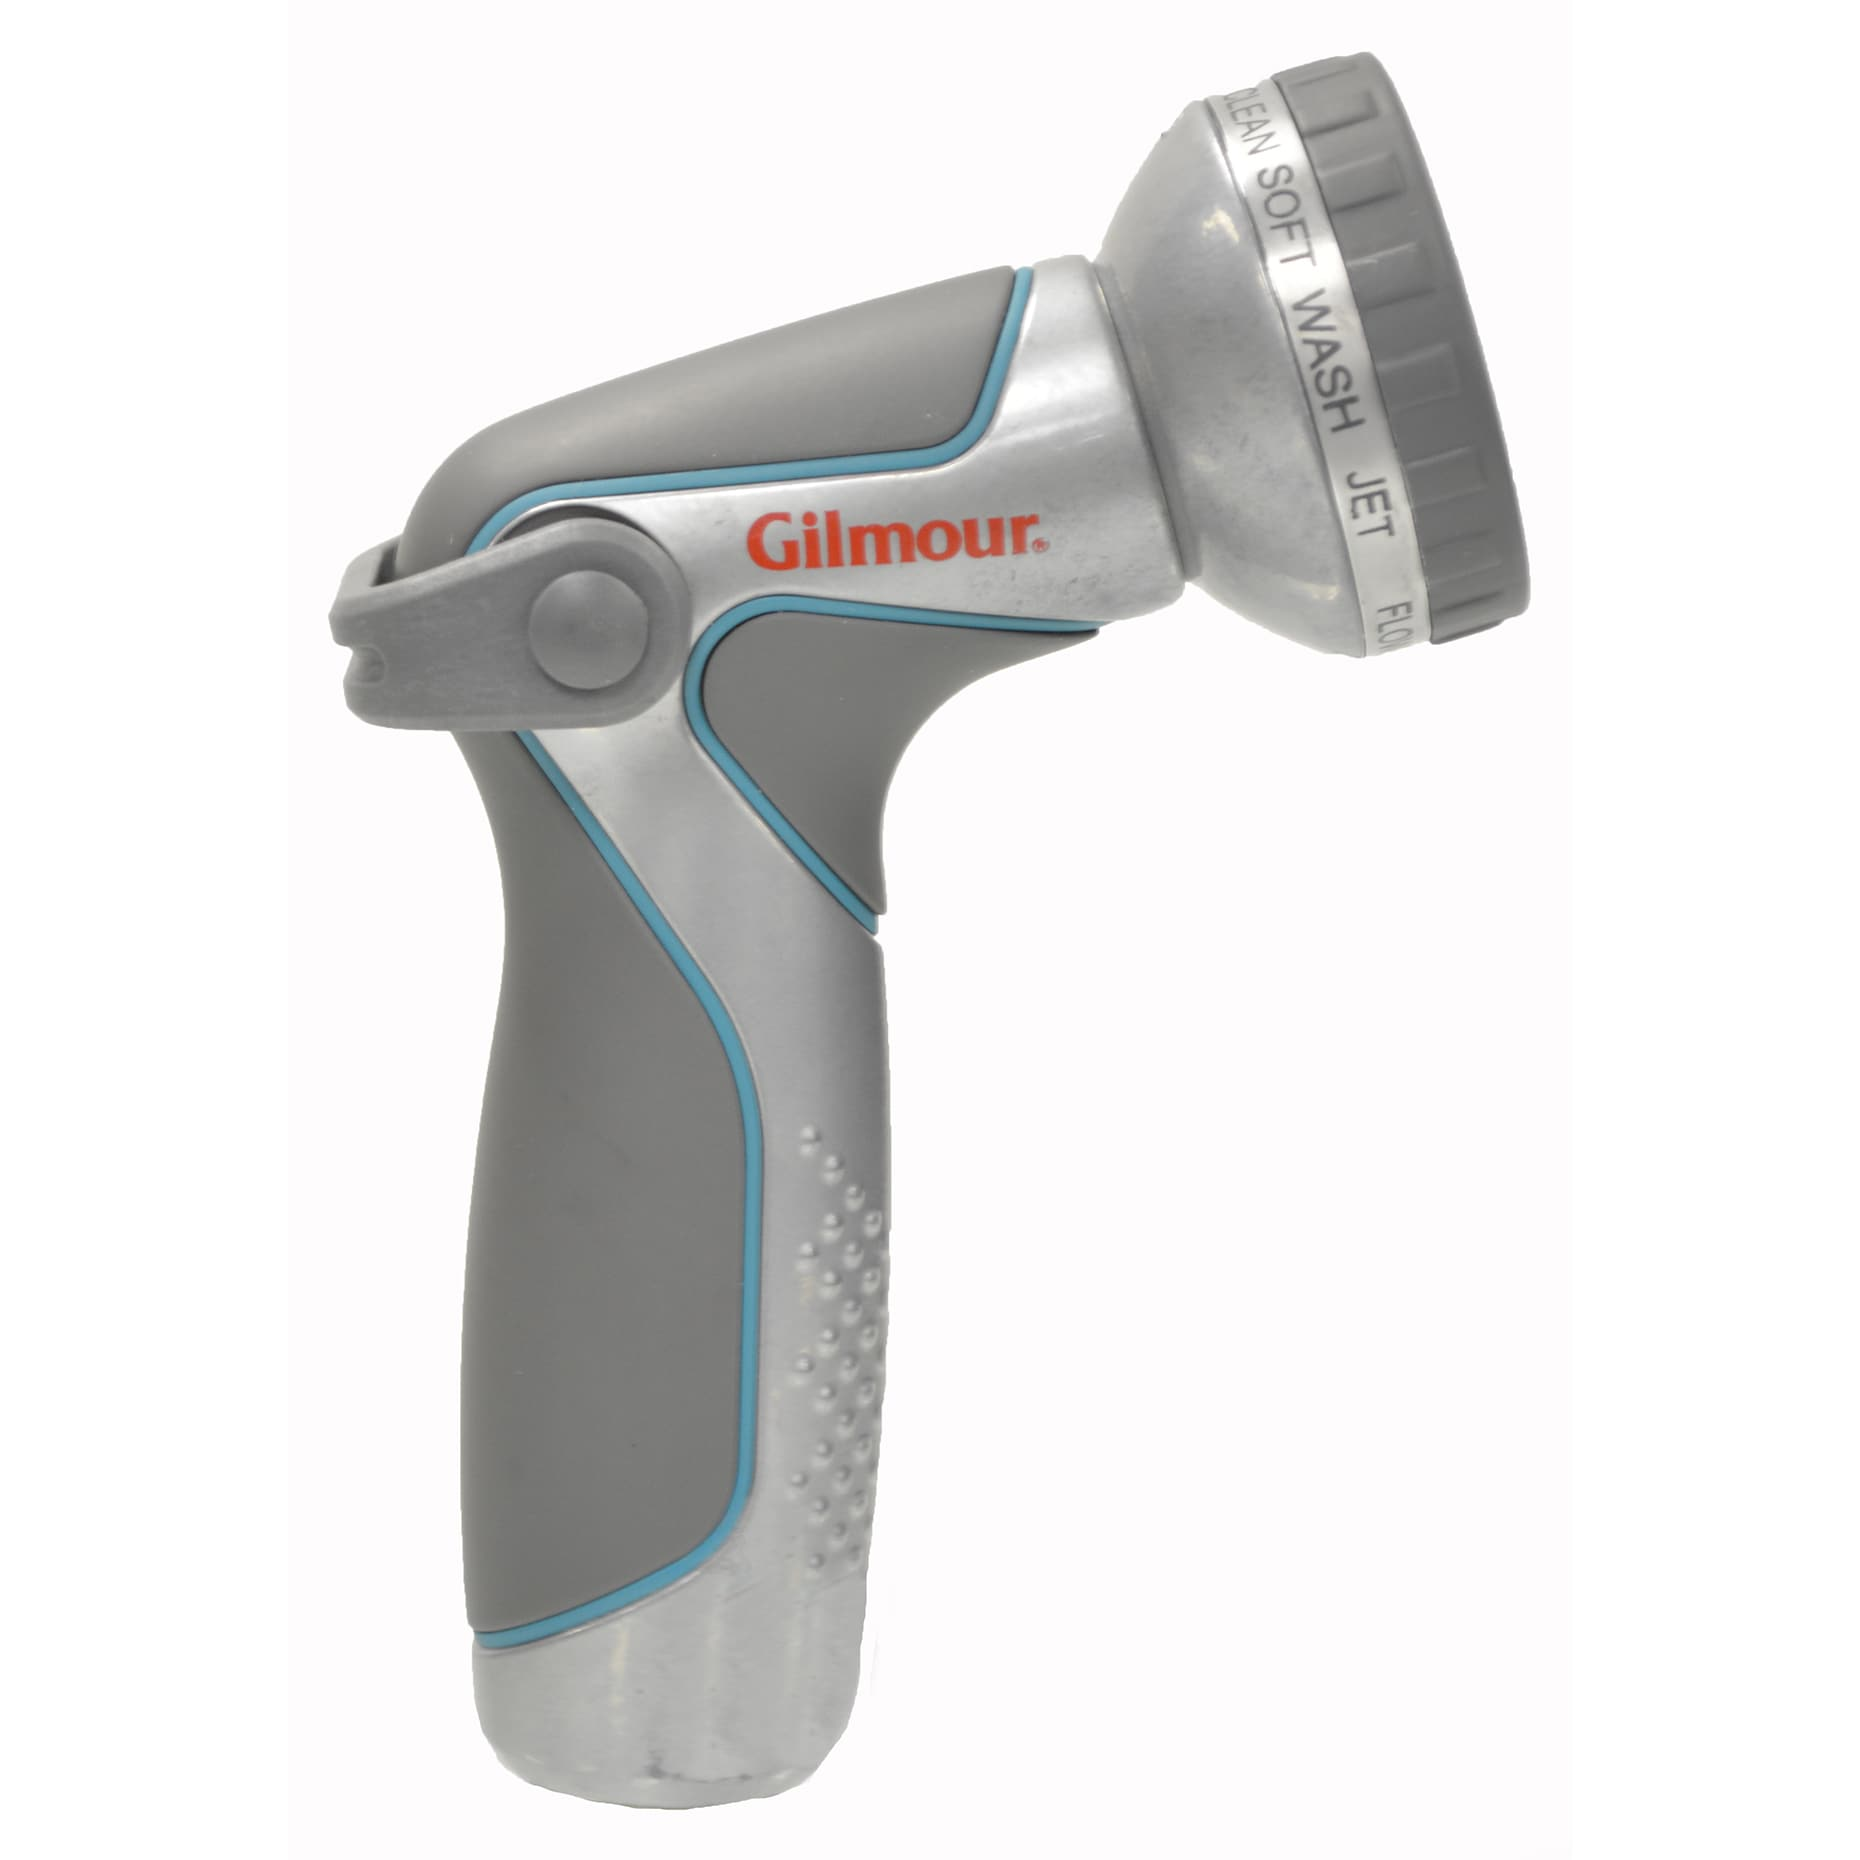 Gilmour Group 400GWT Tumb Trigger Nozzle (Nozzles), Grey ...